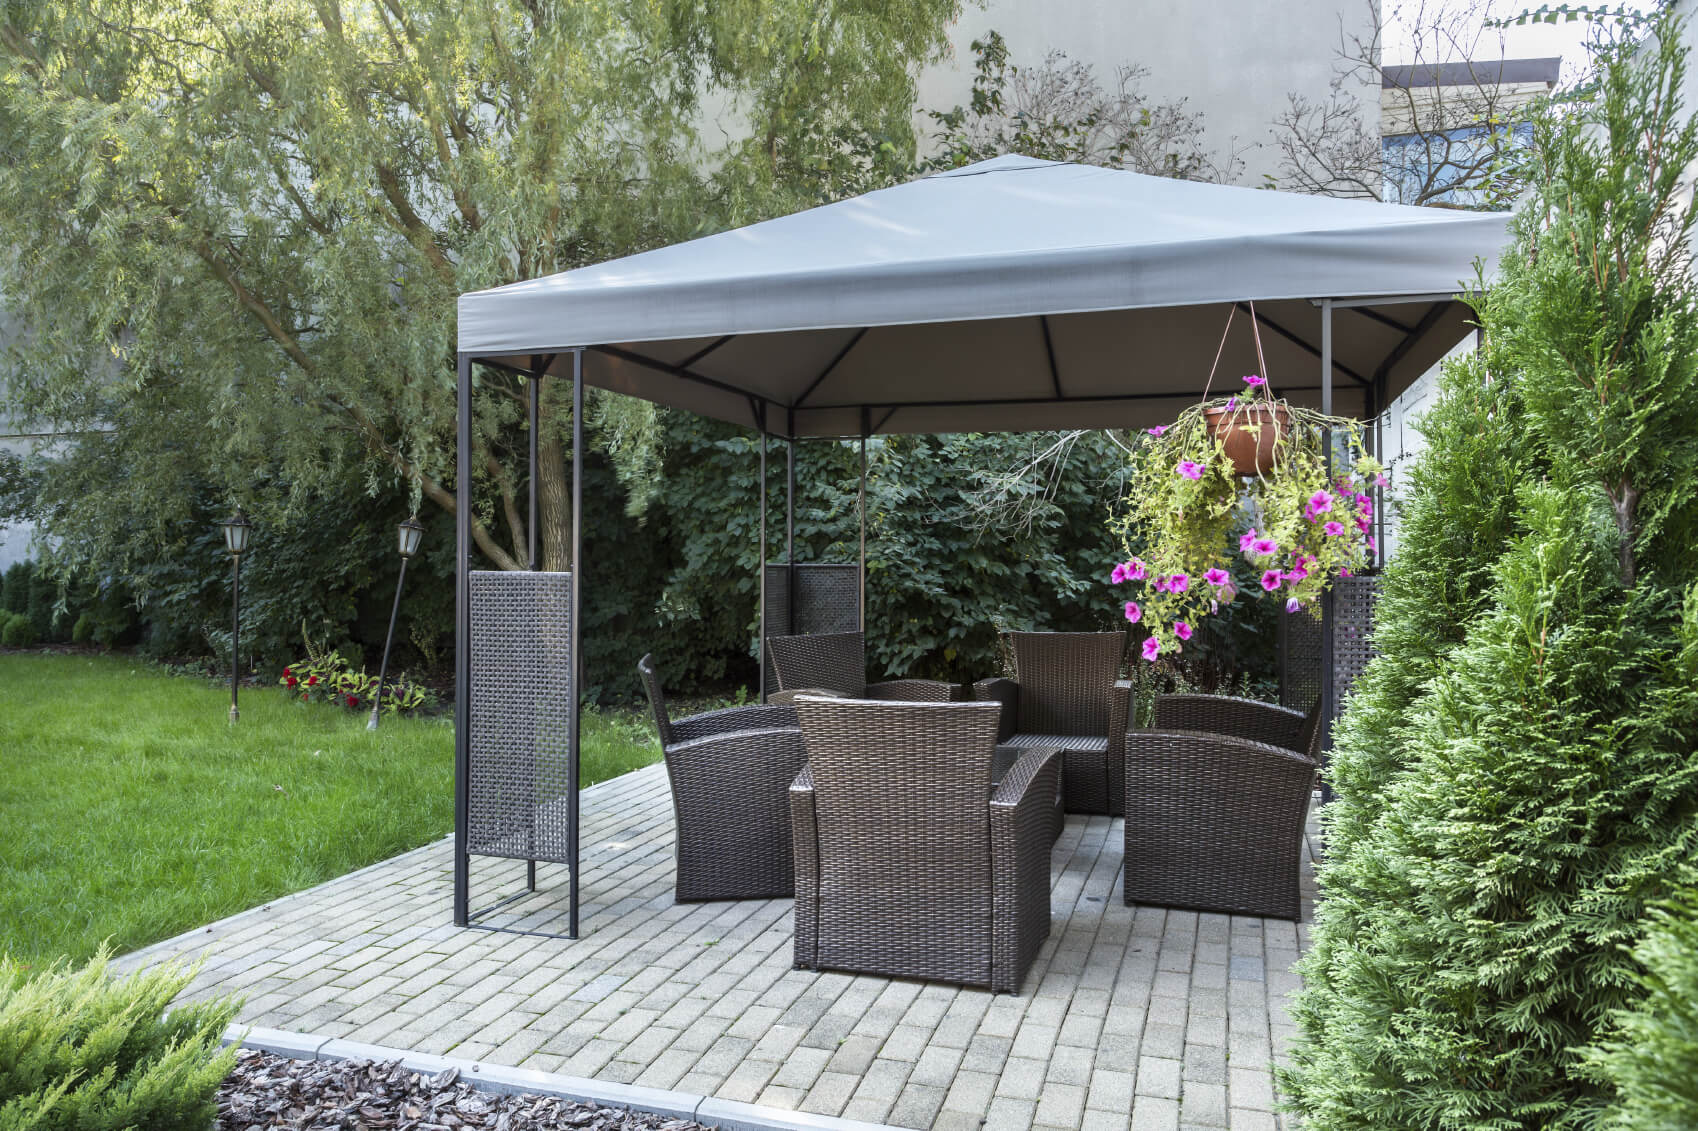 Here is a simple metal pavilion with a cloth top. This is a perfect minimal pavilion for a simple yard. It keeps you out of the rain but does not take up a massive amount of yard space.